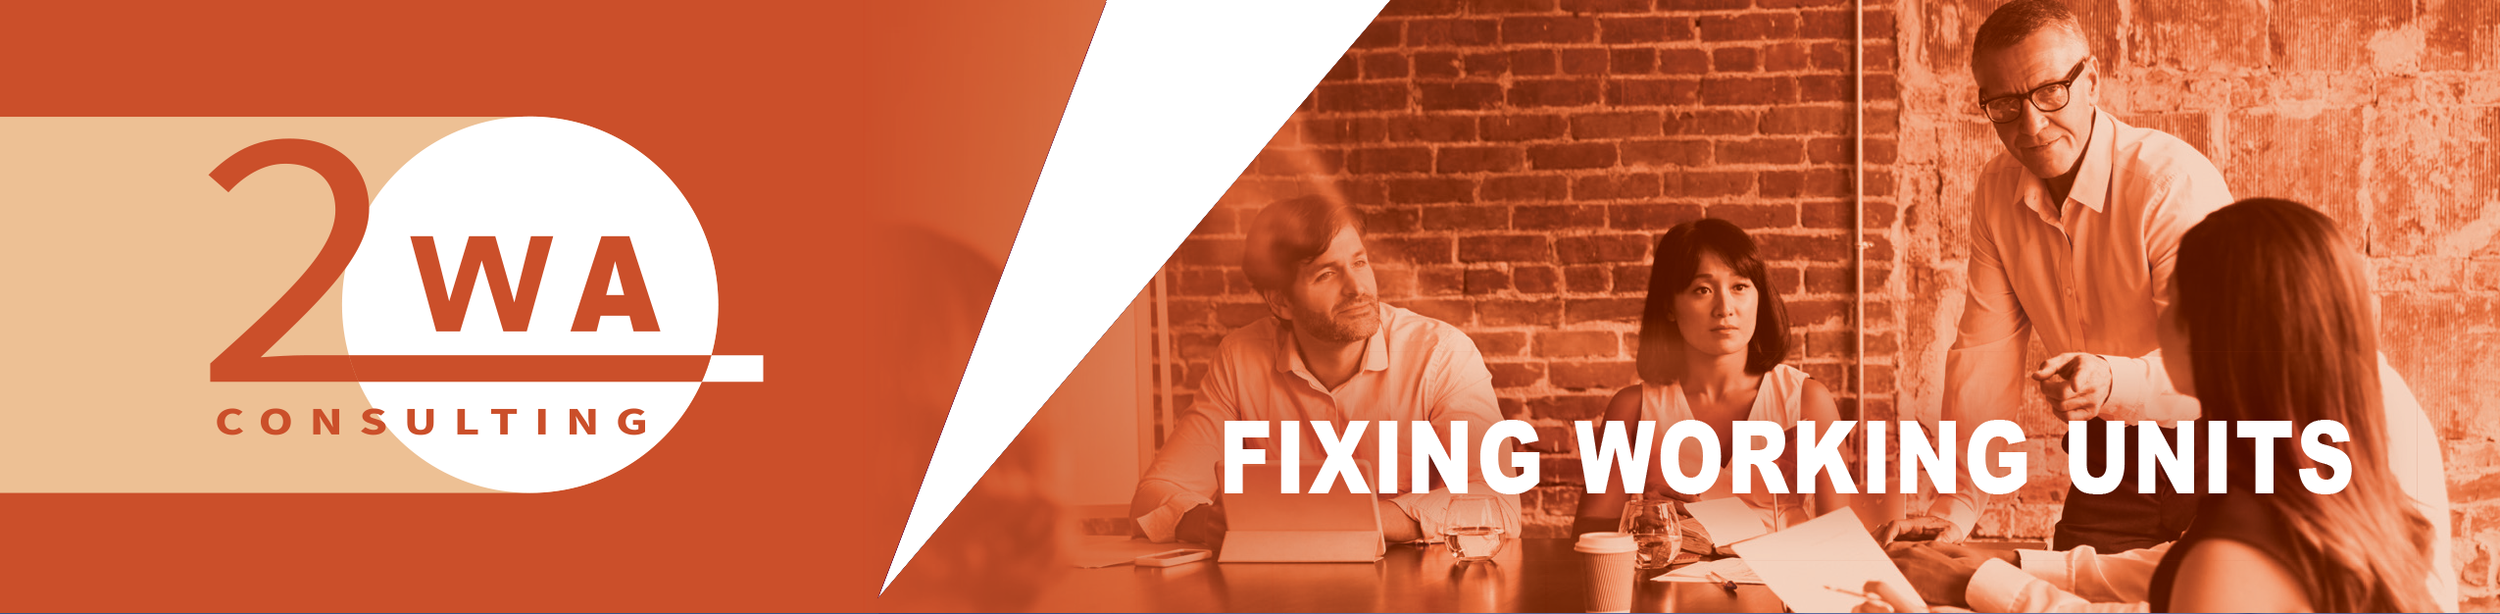 fixing-working-units-header.png